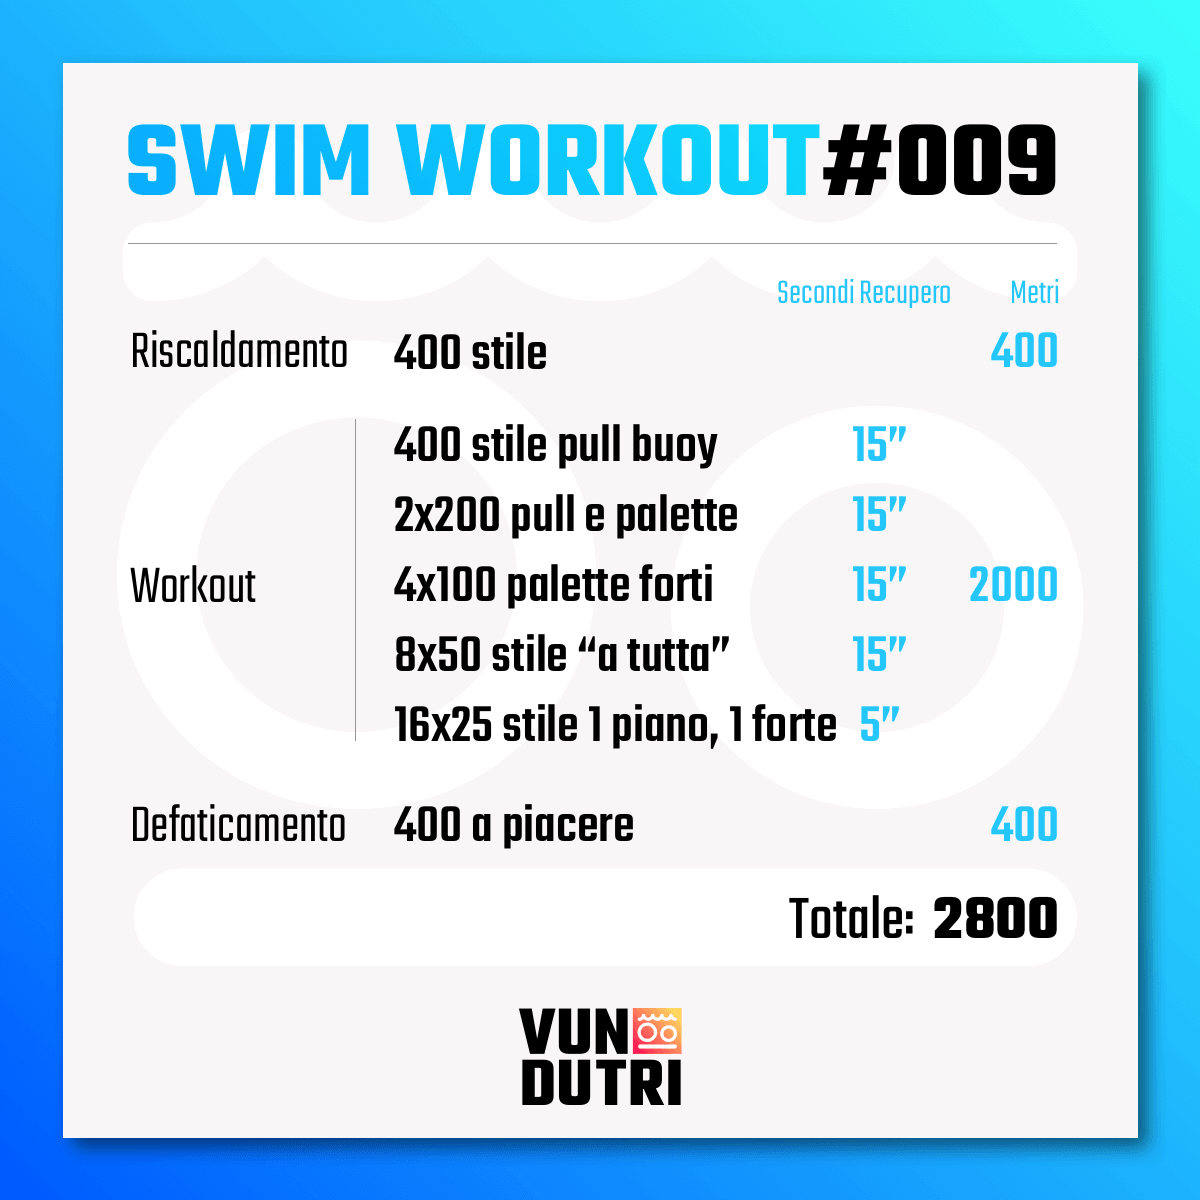 Swim workout 009